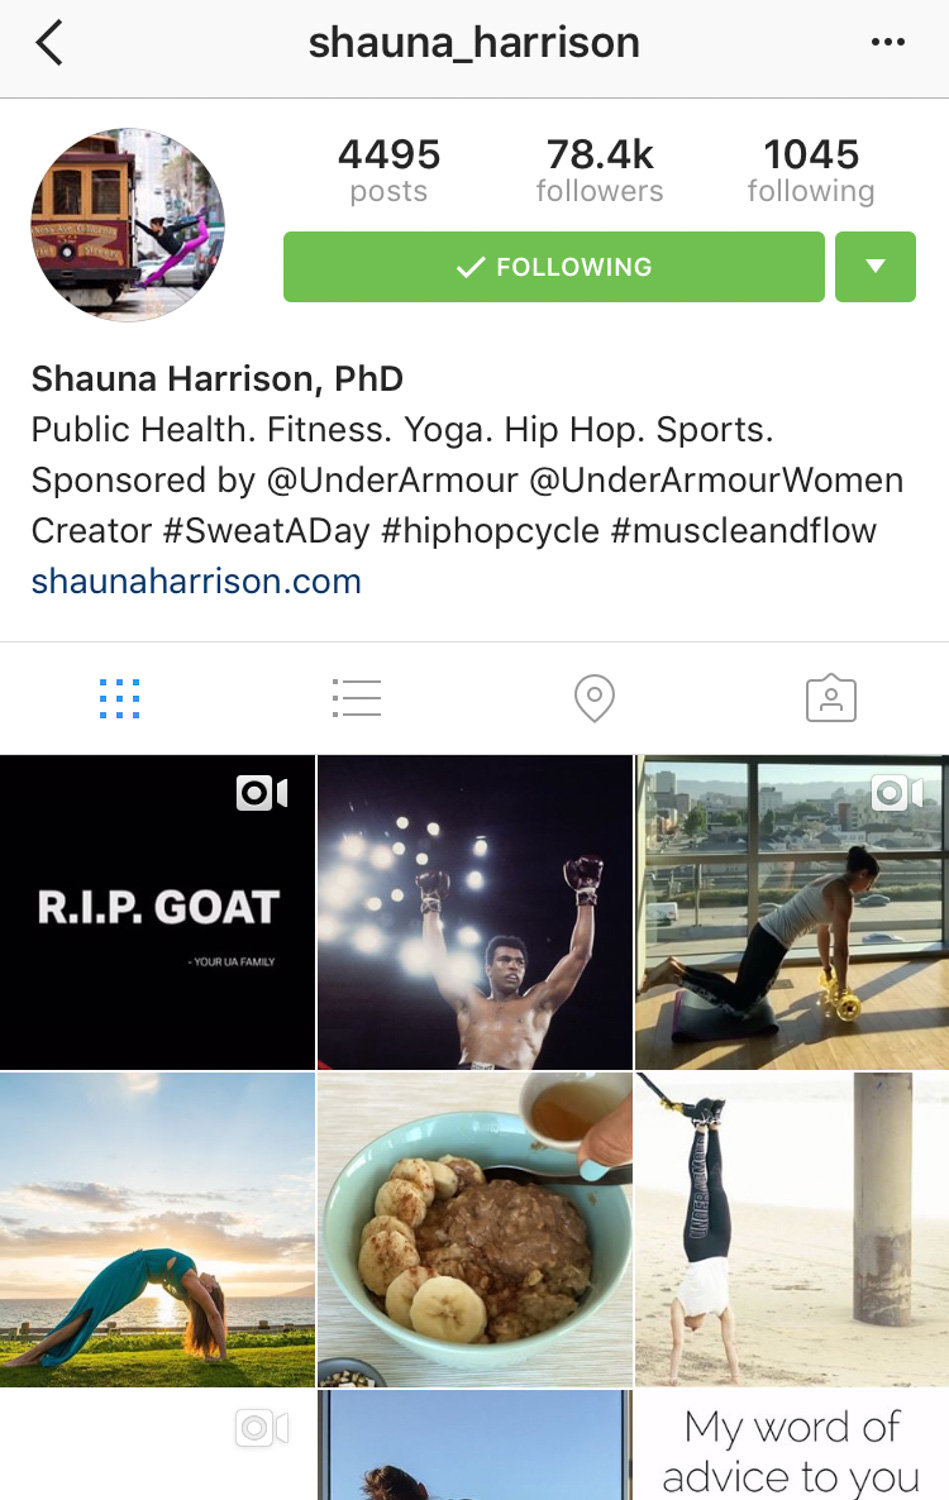 @shauna_harrison's Instagram account.